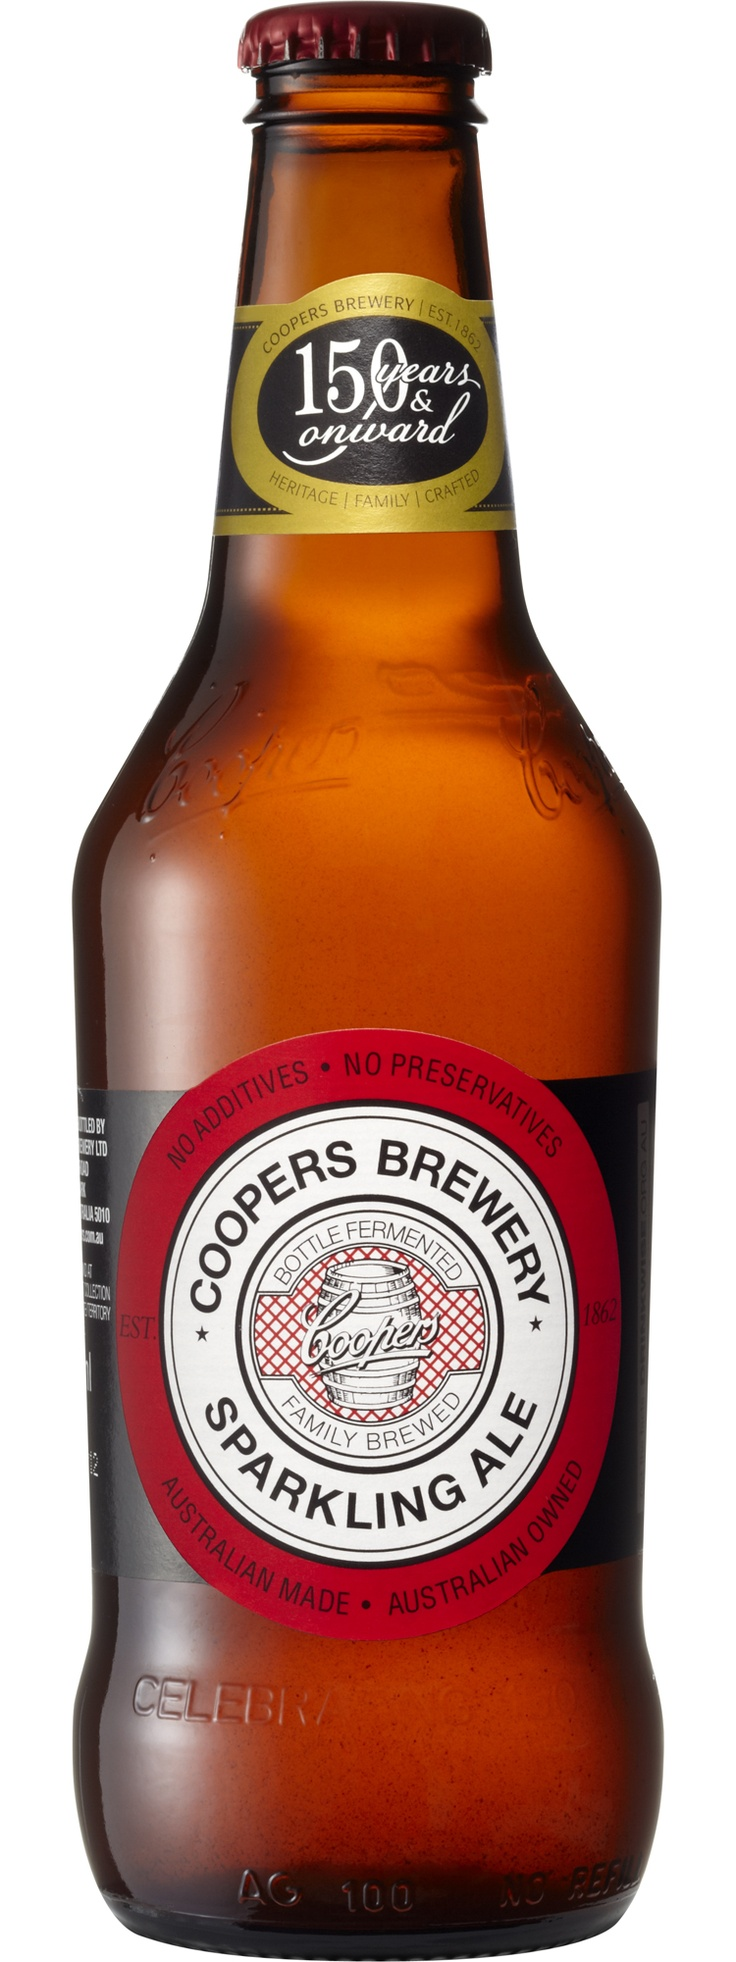 Coopers: Sparkling Ale